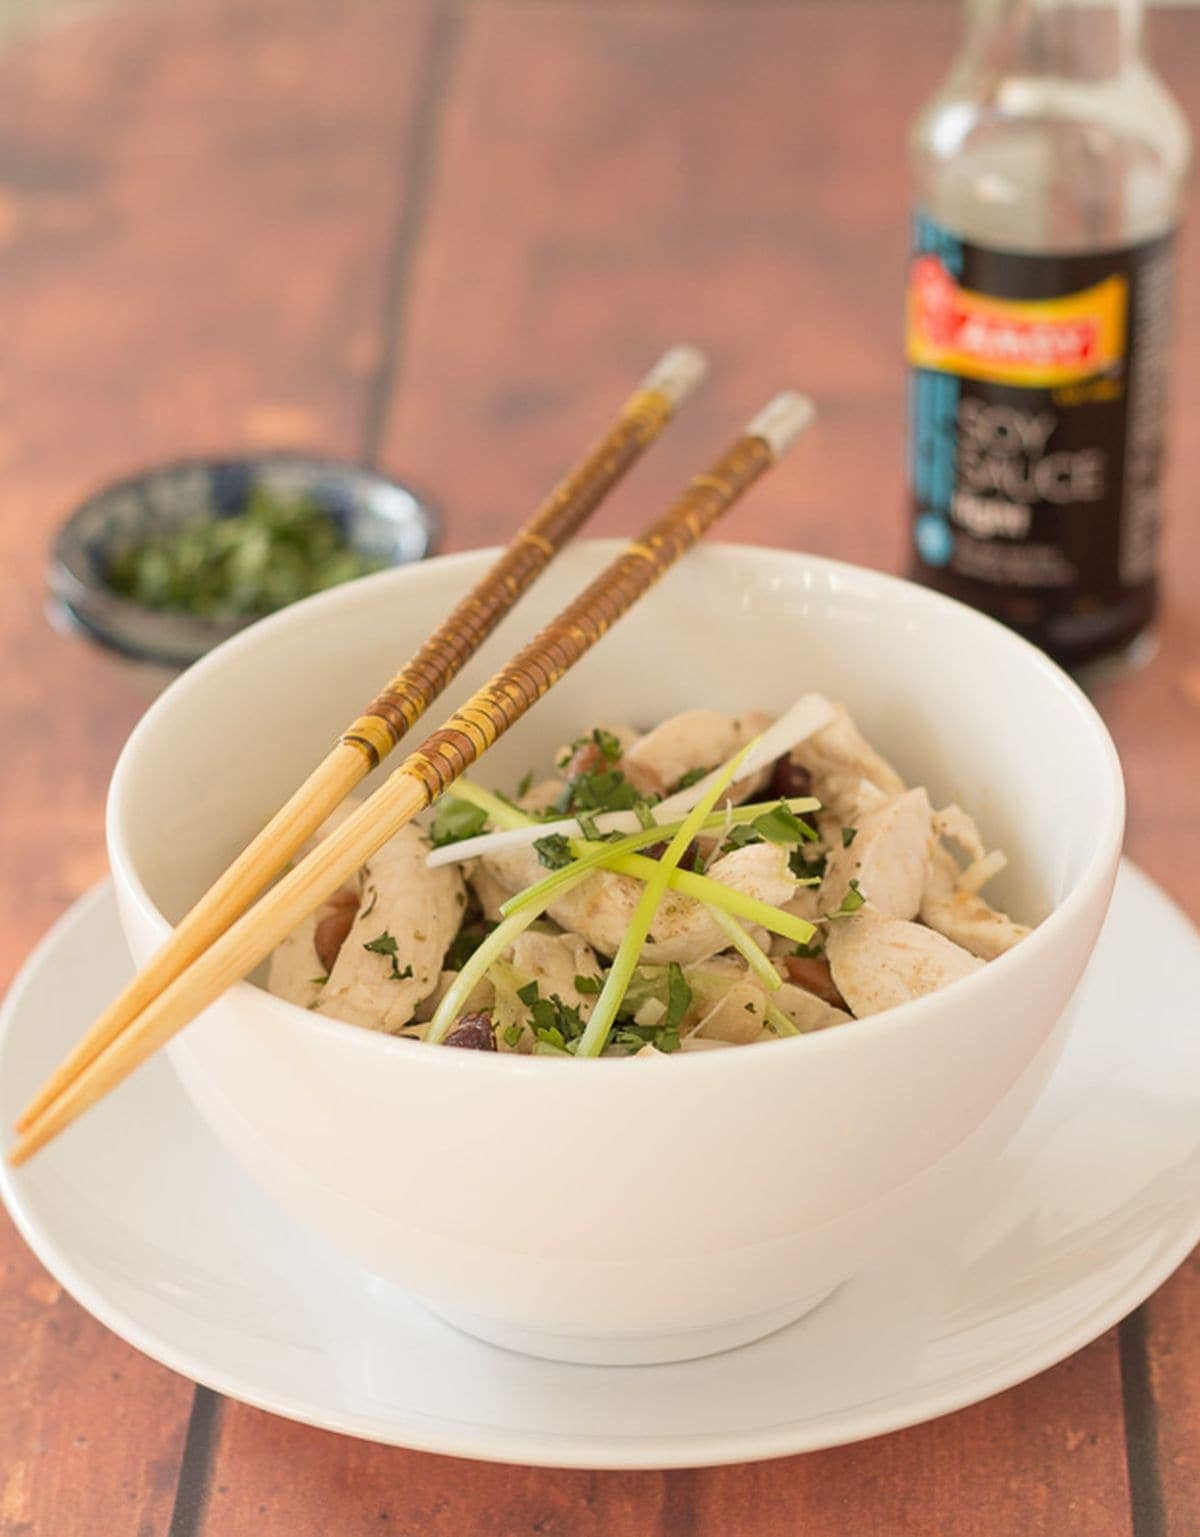 A bowl of chicken and mixed bean stir fry with chopsticks sitting on top. Soy sauce and a dish of chopped coriander in the background.